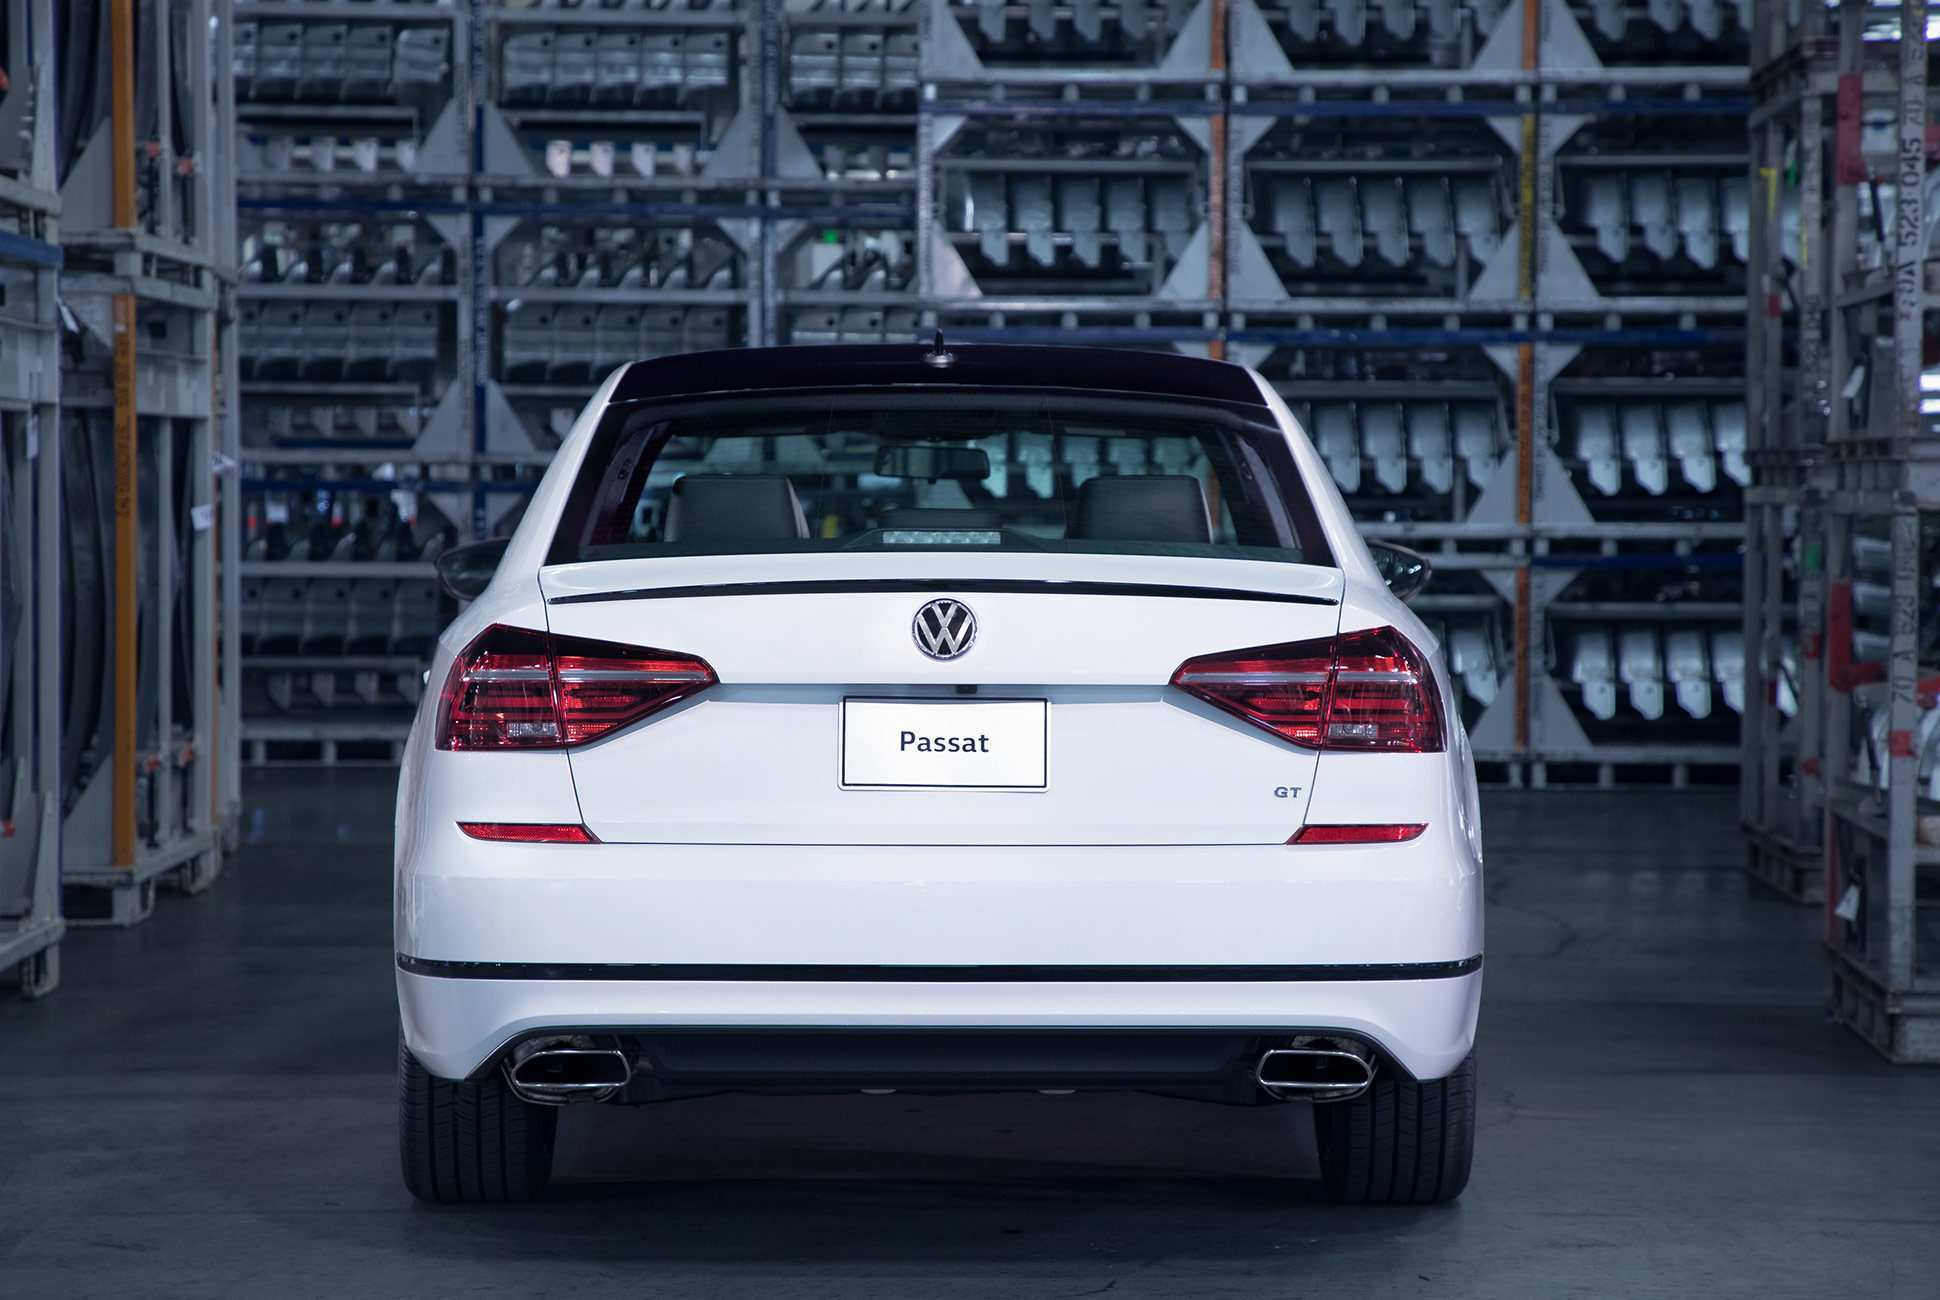 88 All New Vw Passat Gt 2019 Style